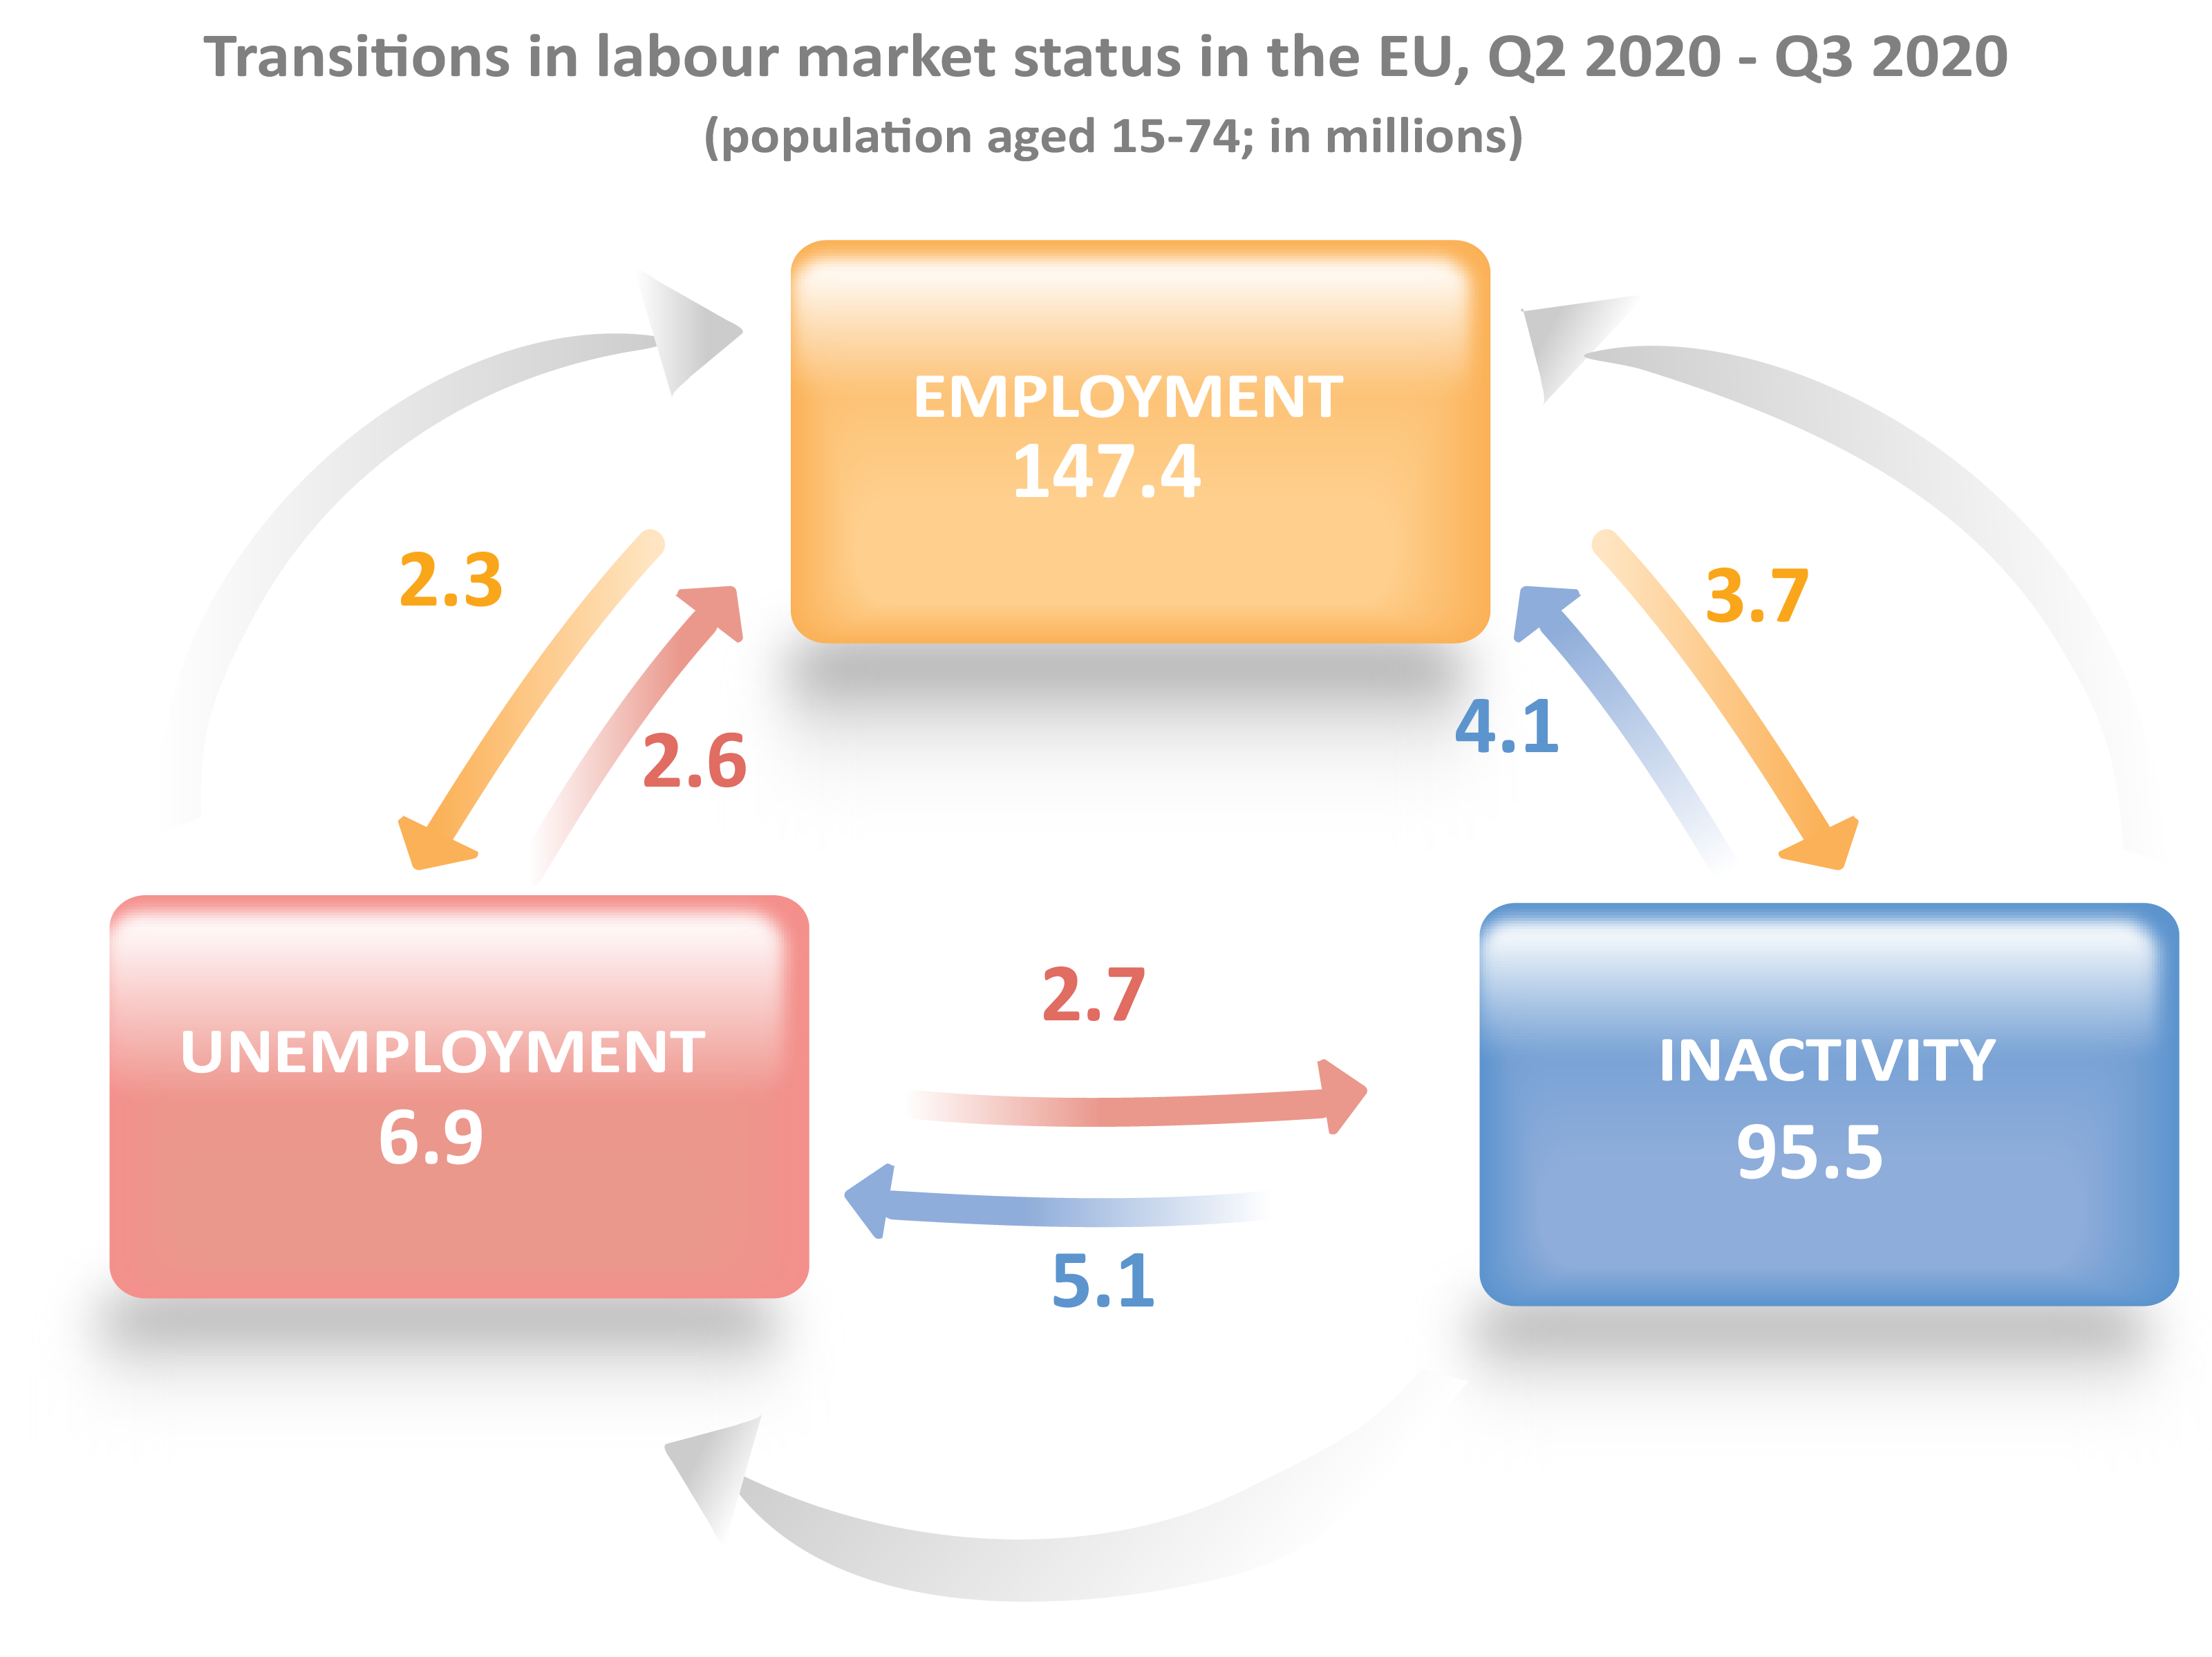 Transitions in labour market status in the EU, Q2 2020 - Q3 2020 (in millions)